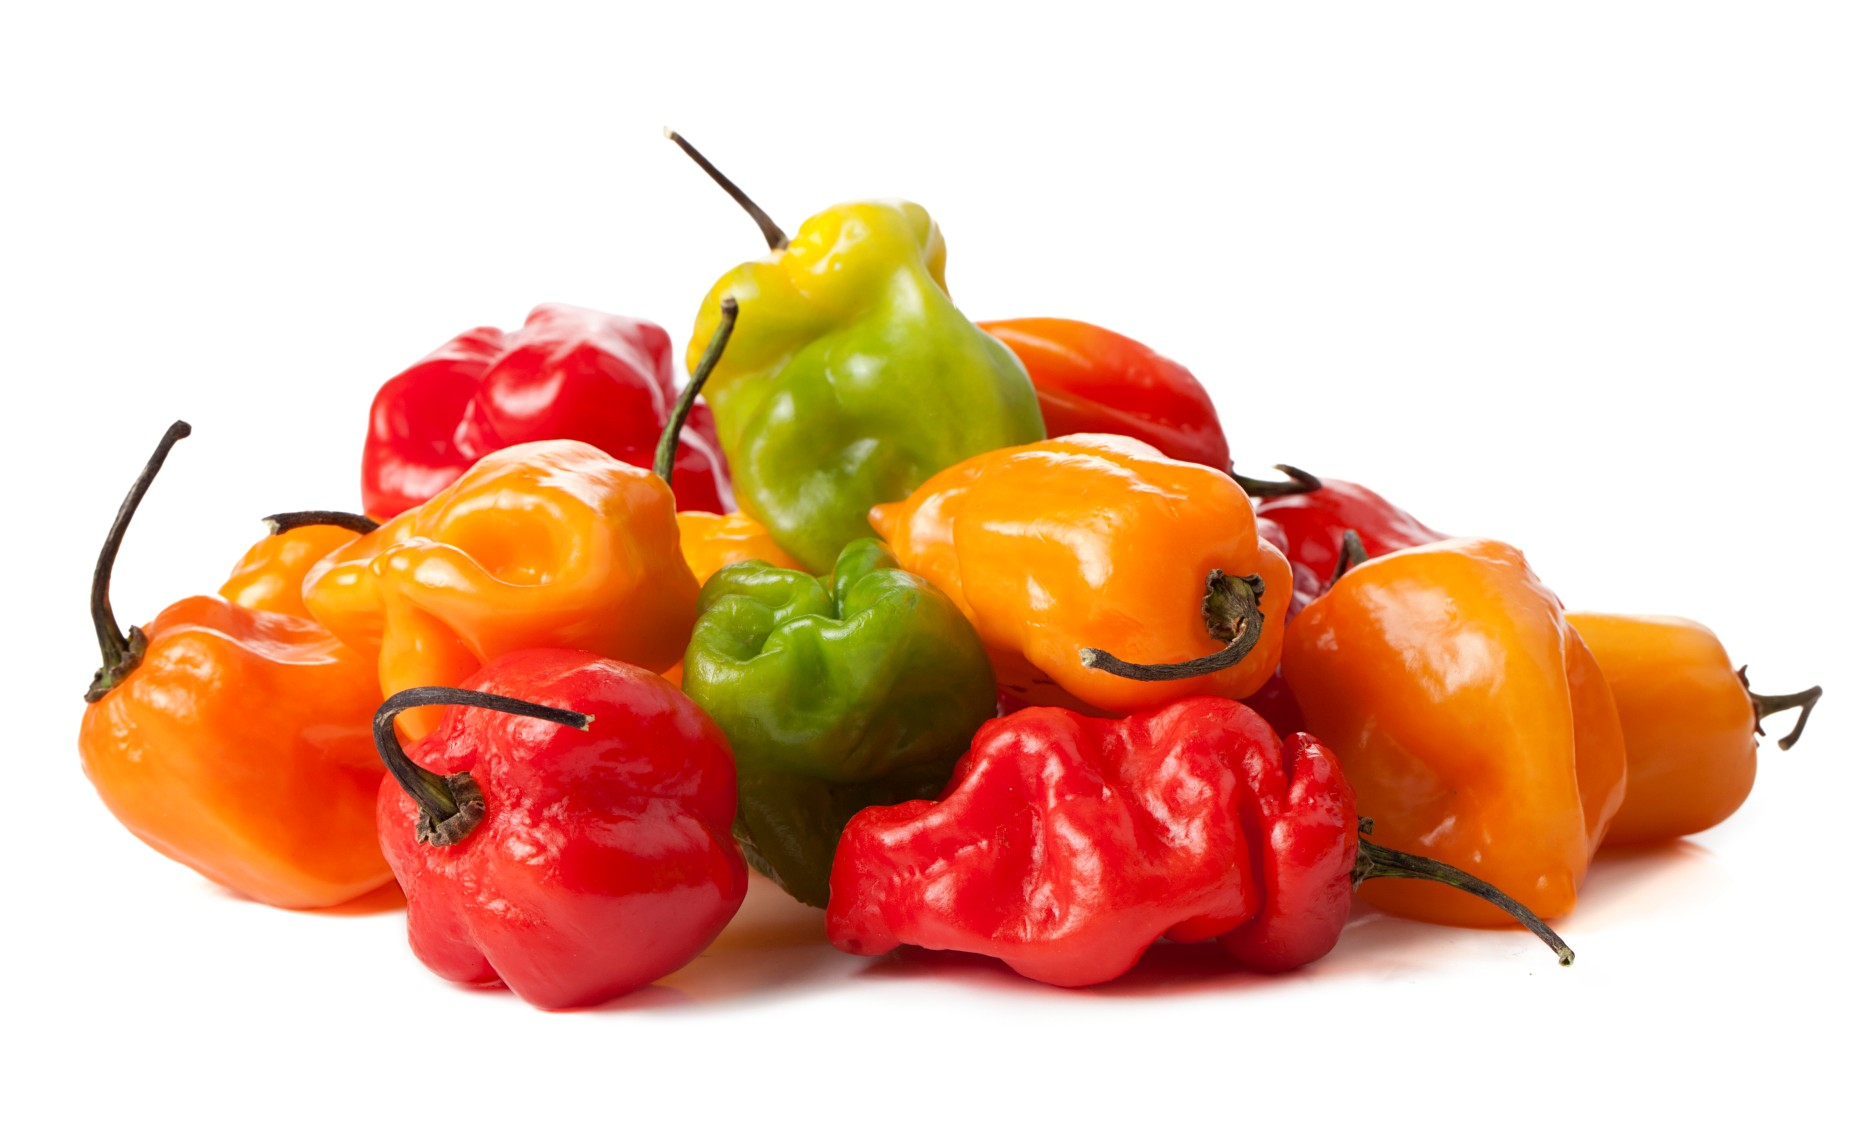 Habanero Peppers Mix 1 - Habanero, Transparent background PNG HD thumbnail